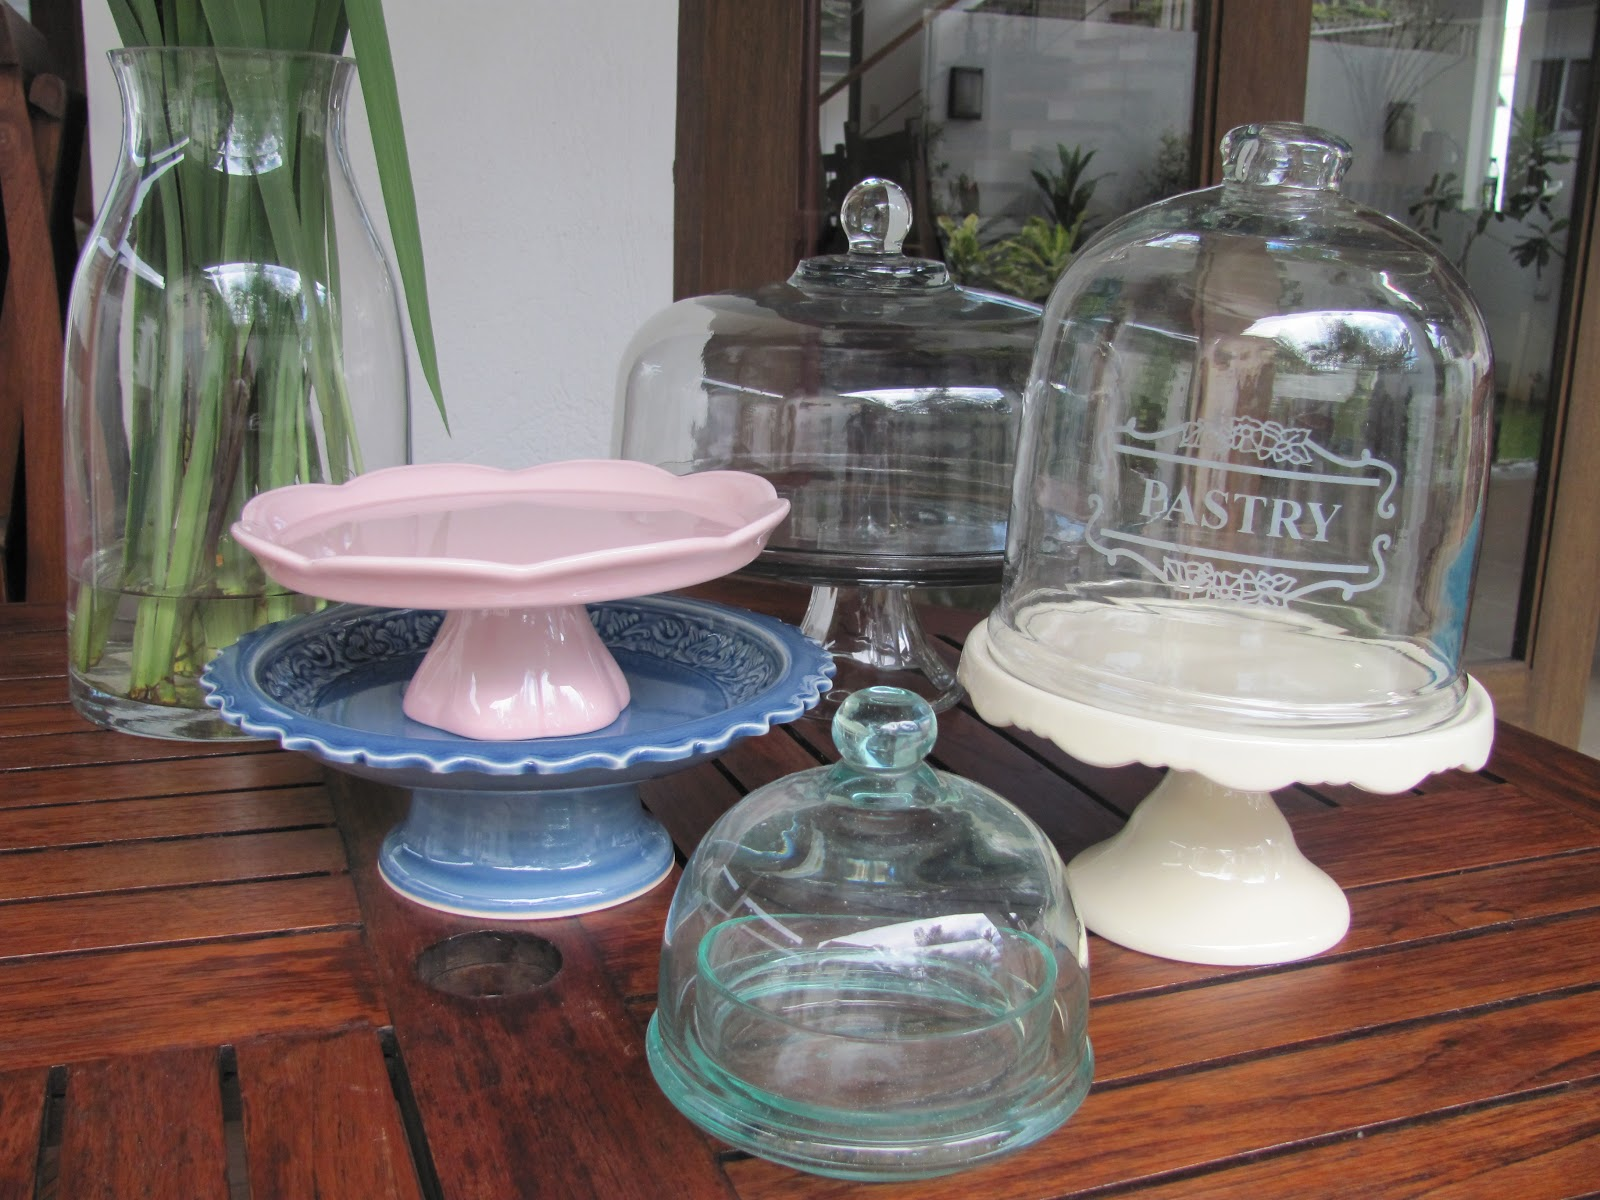 zinc saveoncrafts sets stands stand dome with pedestal cloche pedestals rustic glass serving metal cake